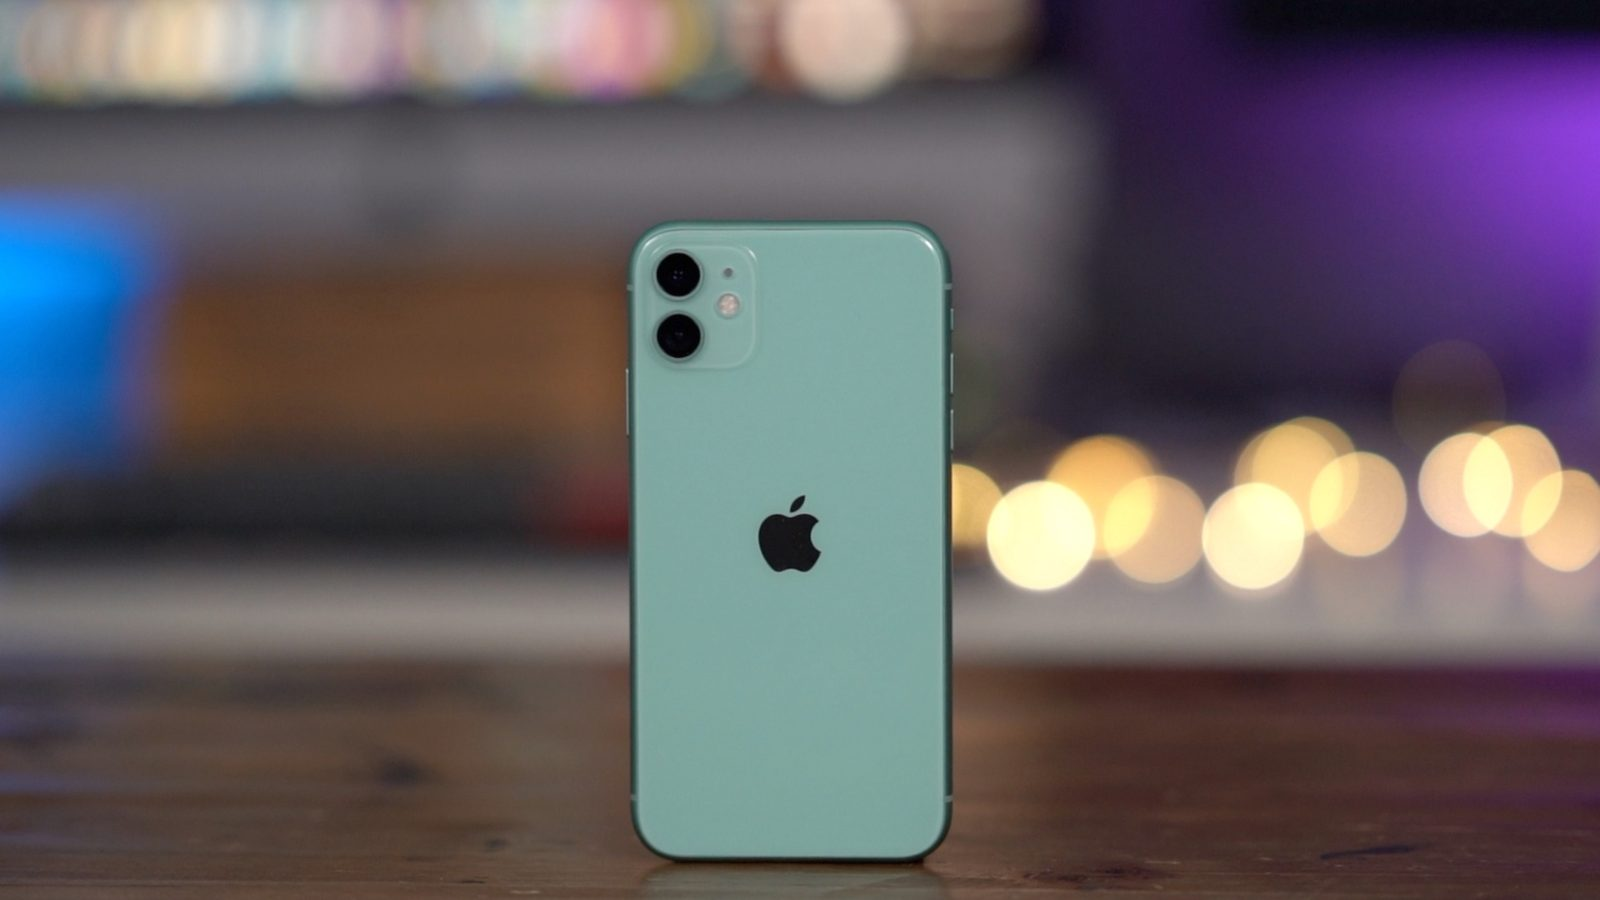 Apple reportedly asks TSMC to increase A13 chip production to keep up with iPhone 11 demand